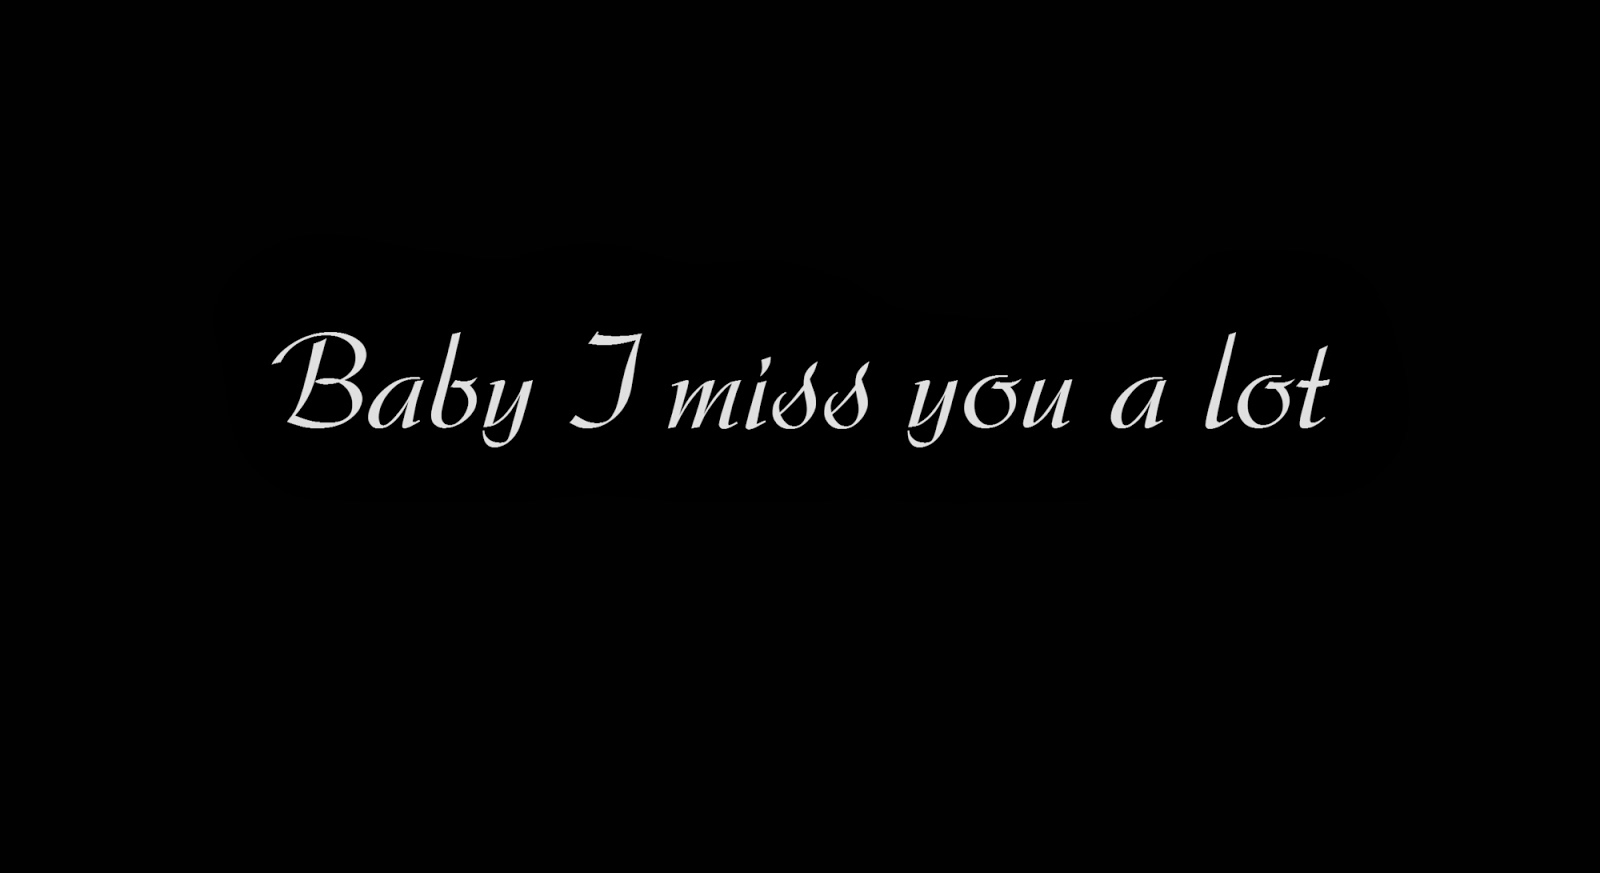 I Love You Quotes: I Love You Baby Quotes For Him. QuotesGram